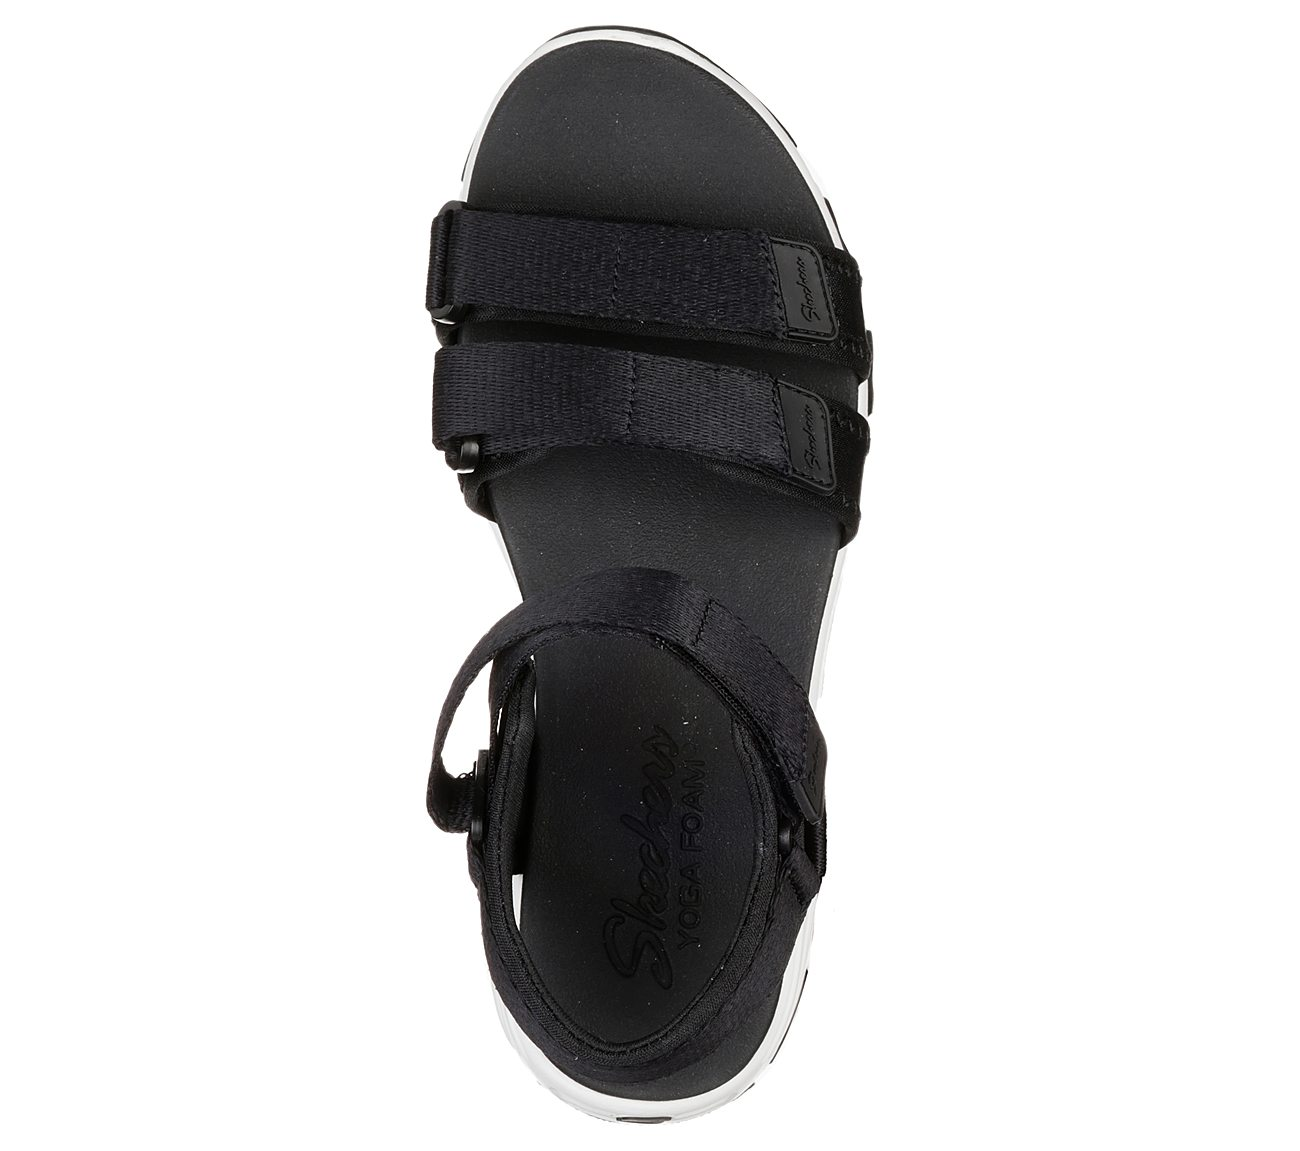 skechers yoga foam sandals